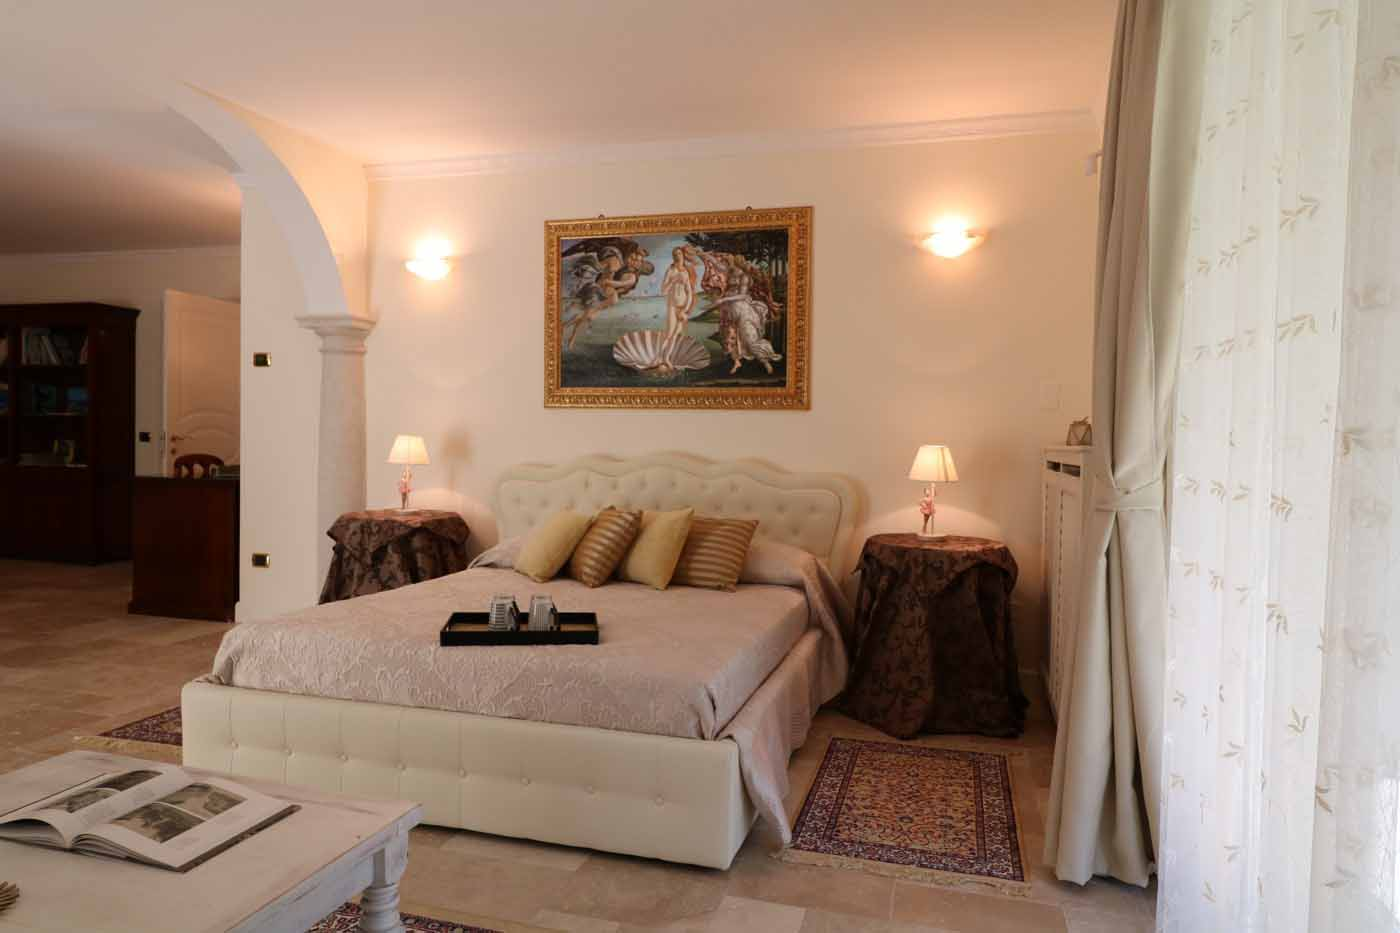 Lake Garda-Bed and Breakfast-La cascata